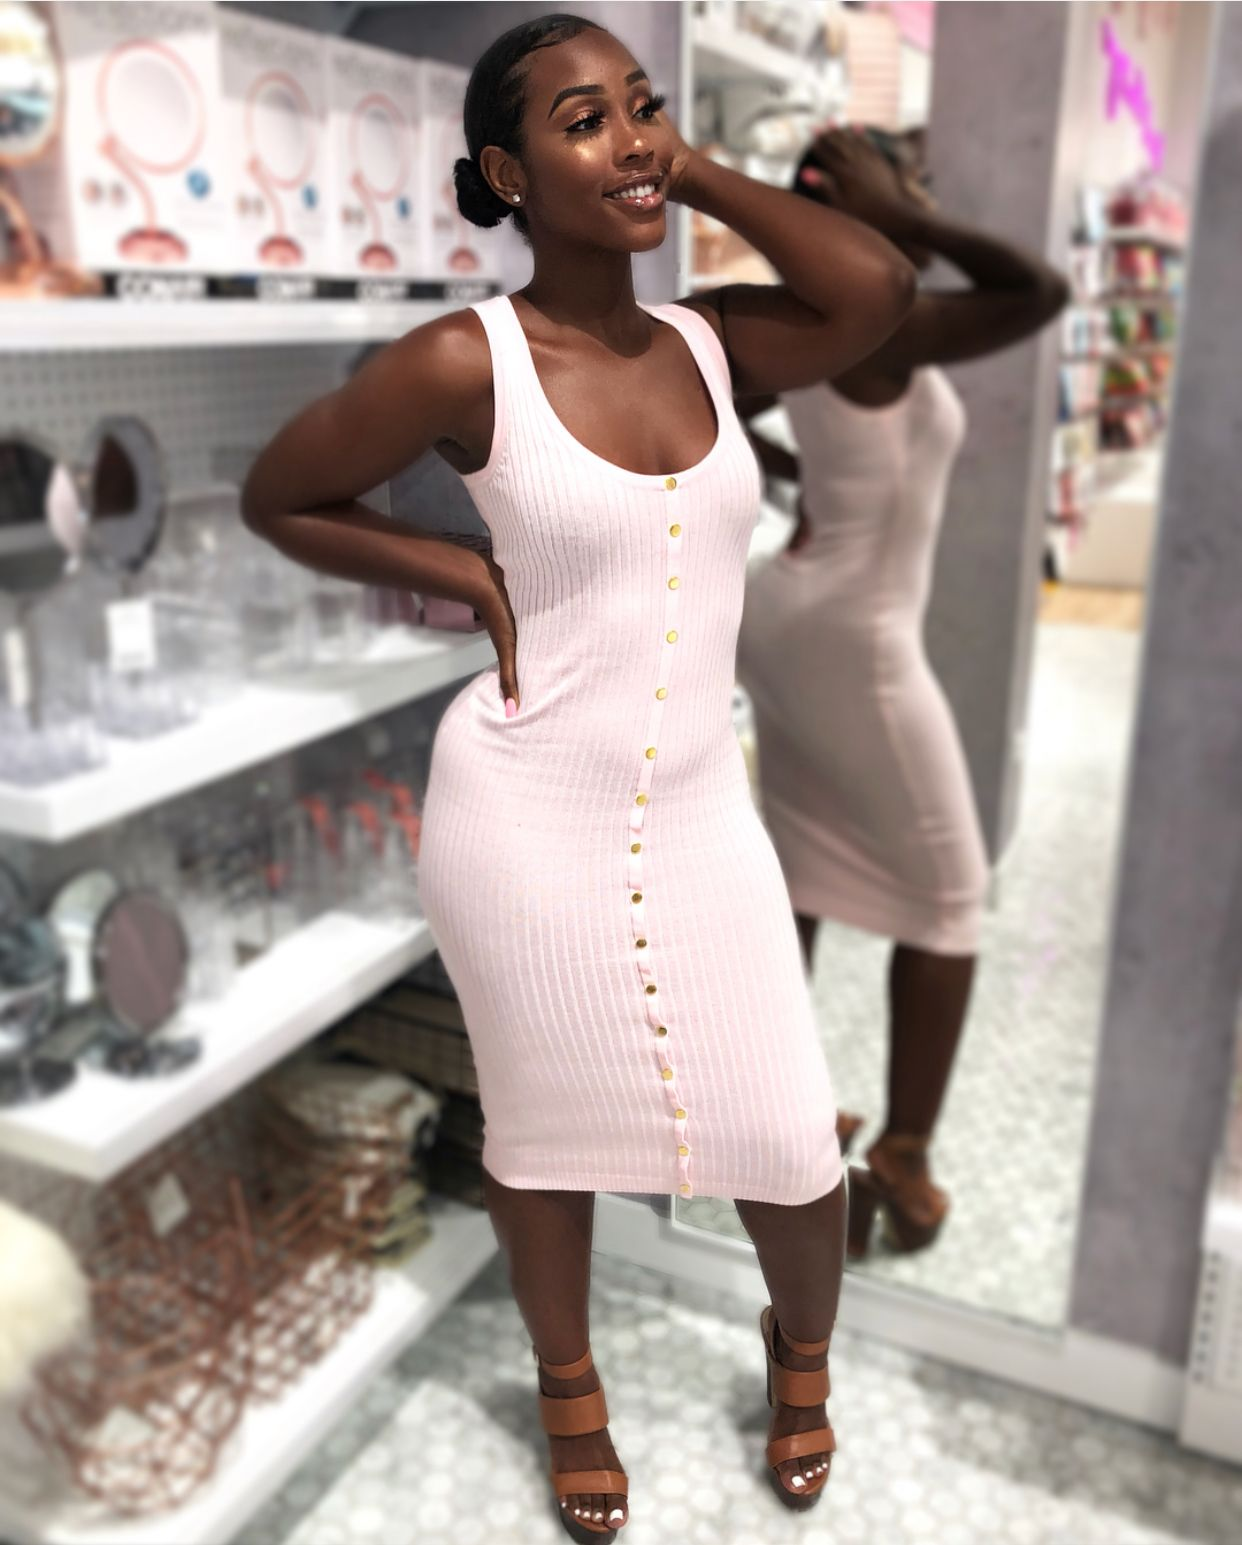 Pin by bitchz on black girls in pinterest fashion outfits